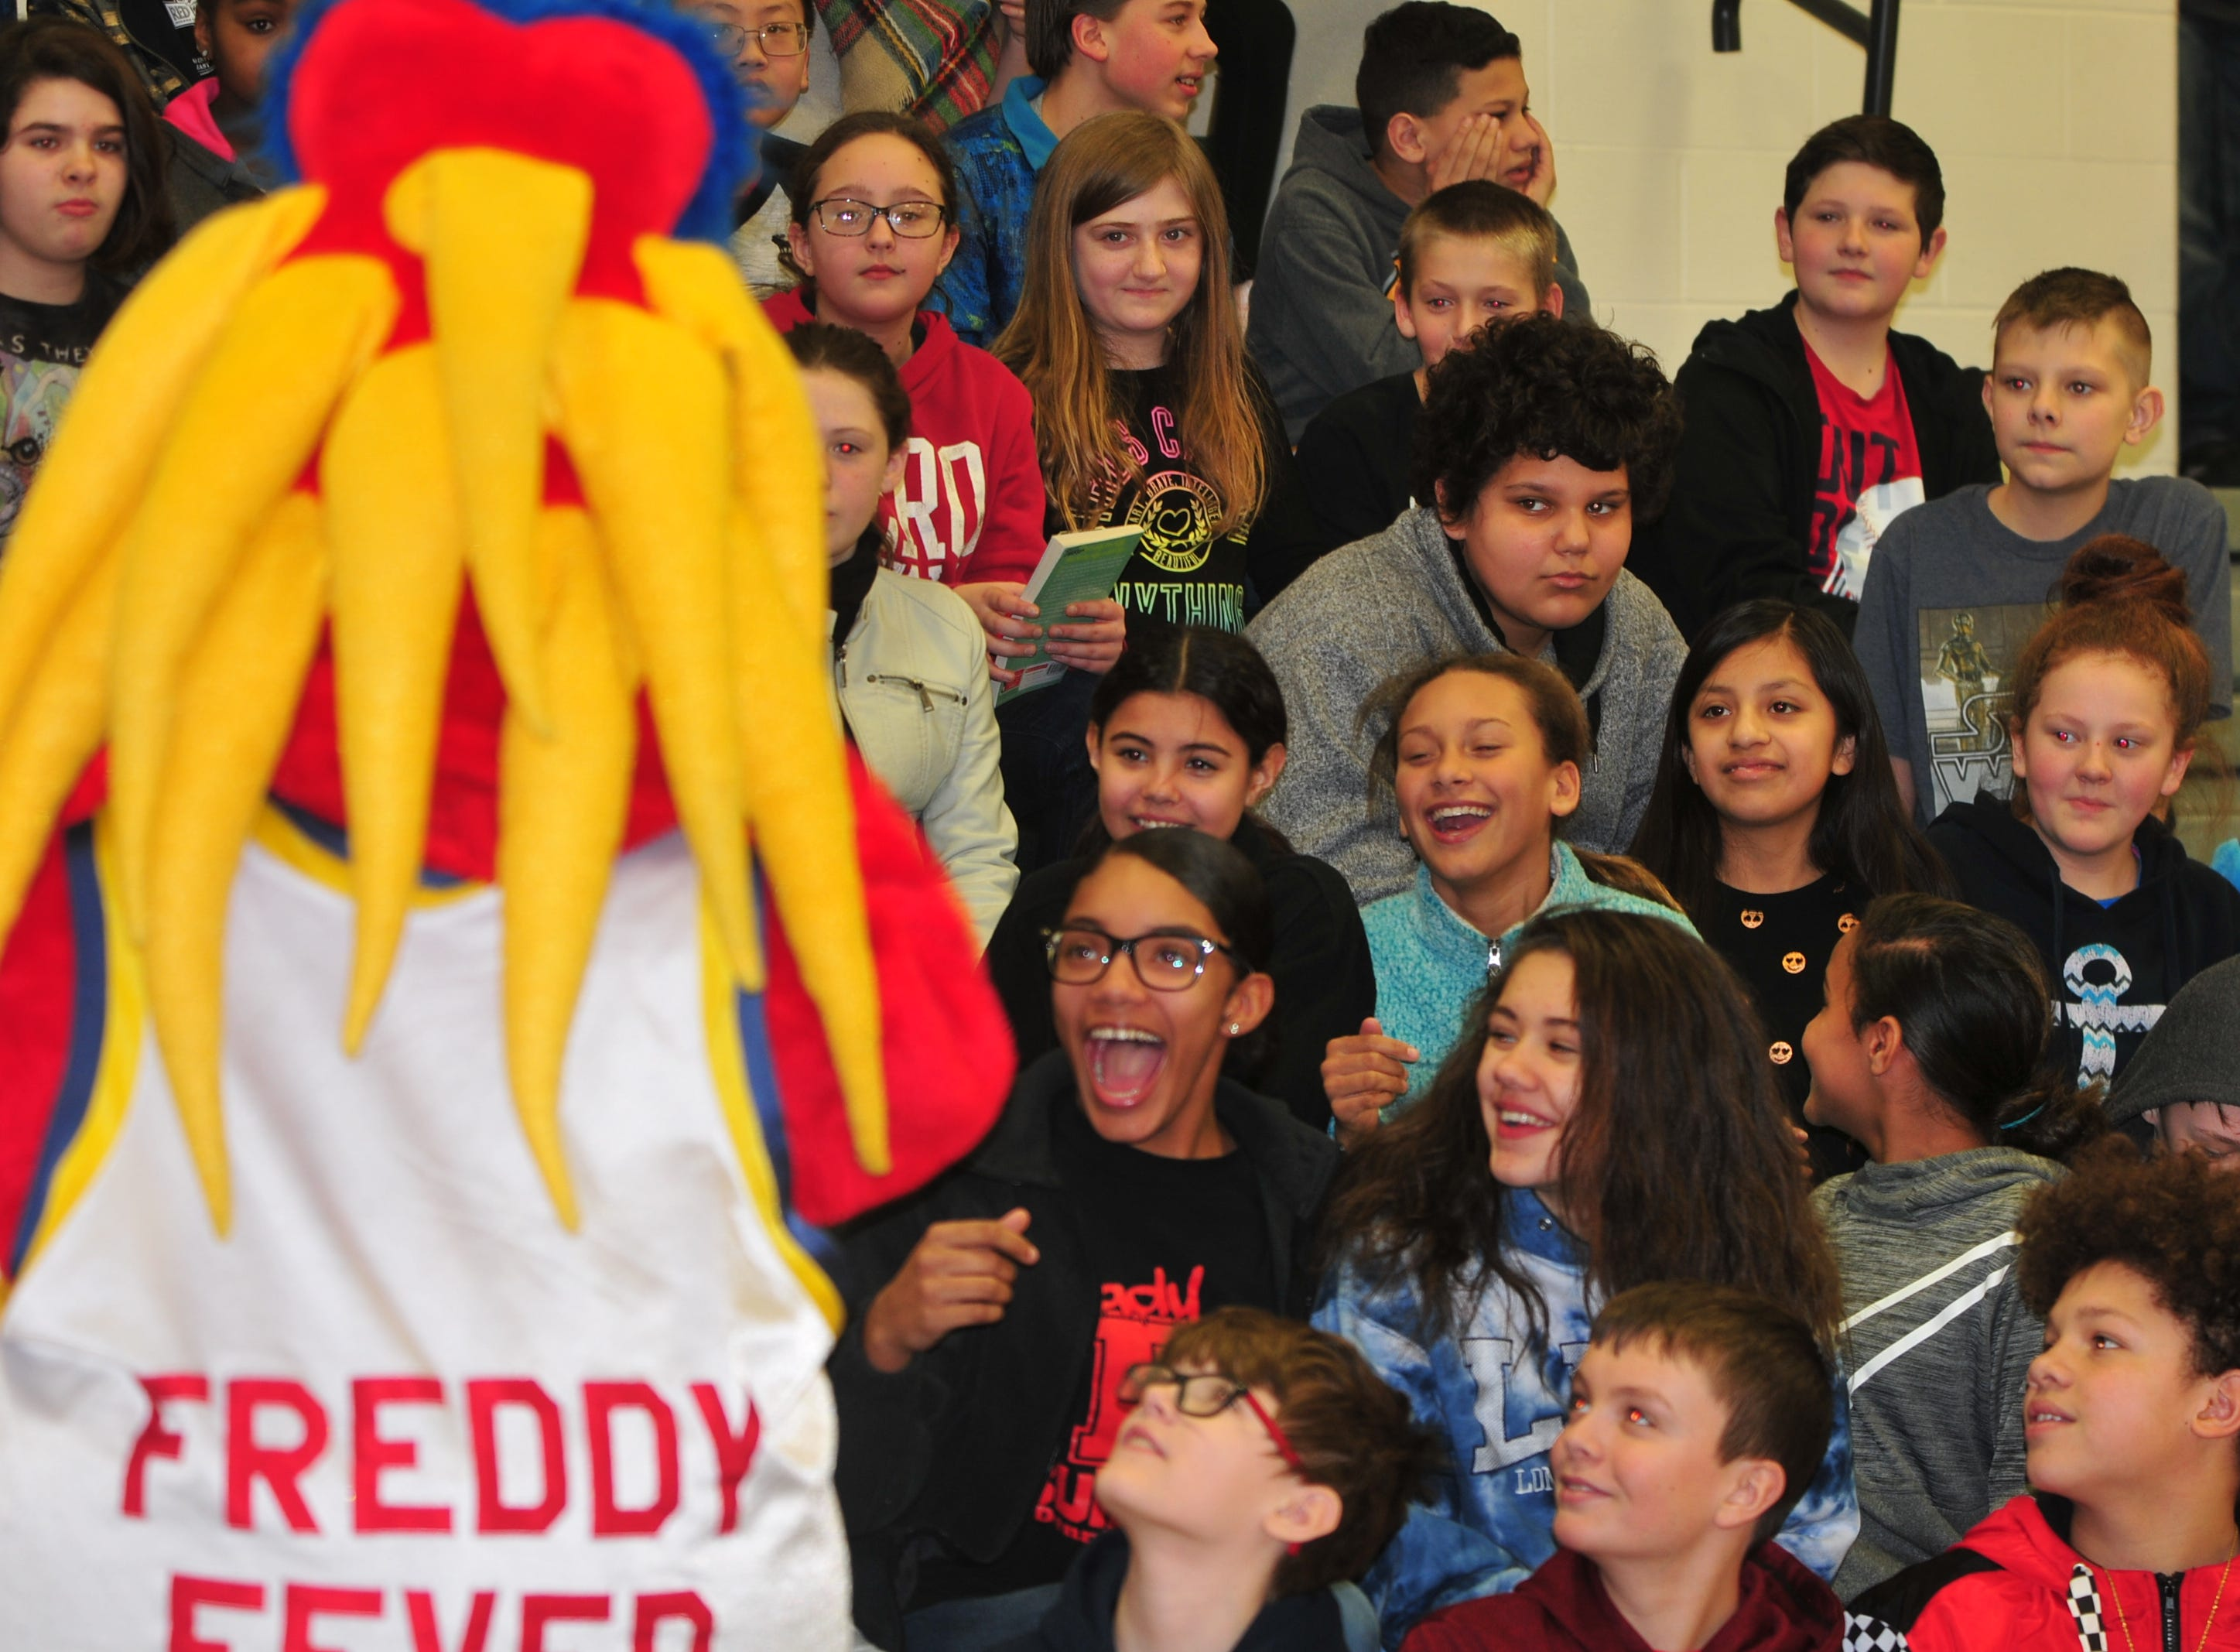 Dennis Intermediate School students react to Freddy Fever, mascot for the WNBA's Indiana Fever.